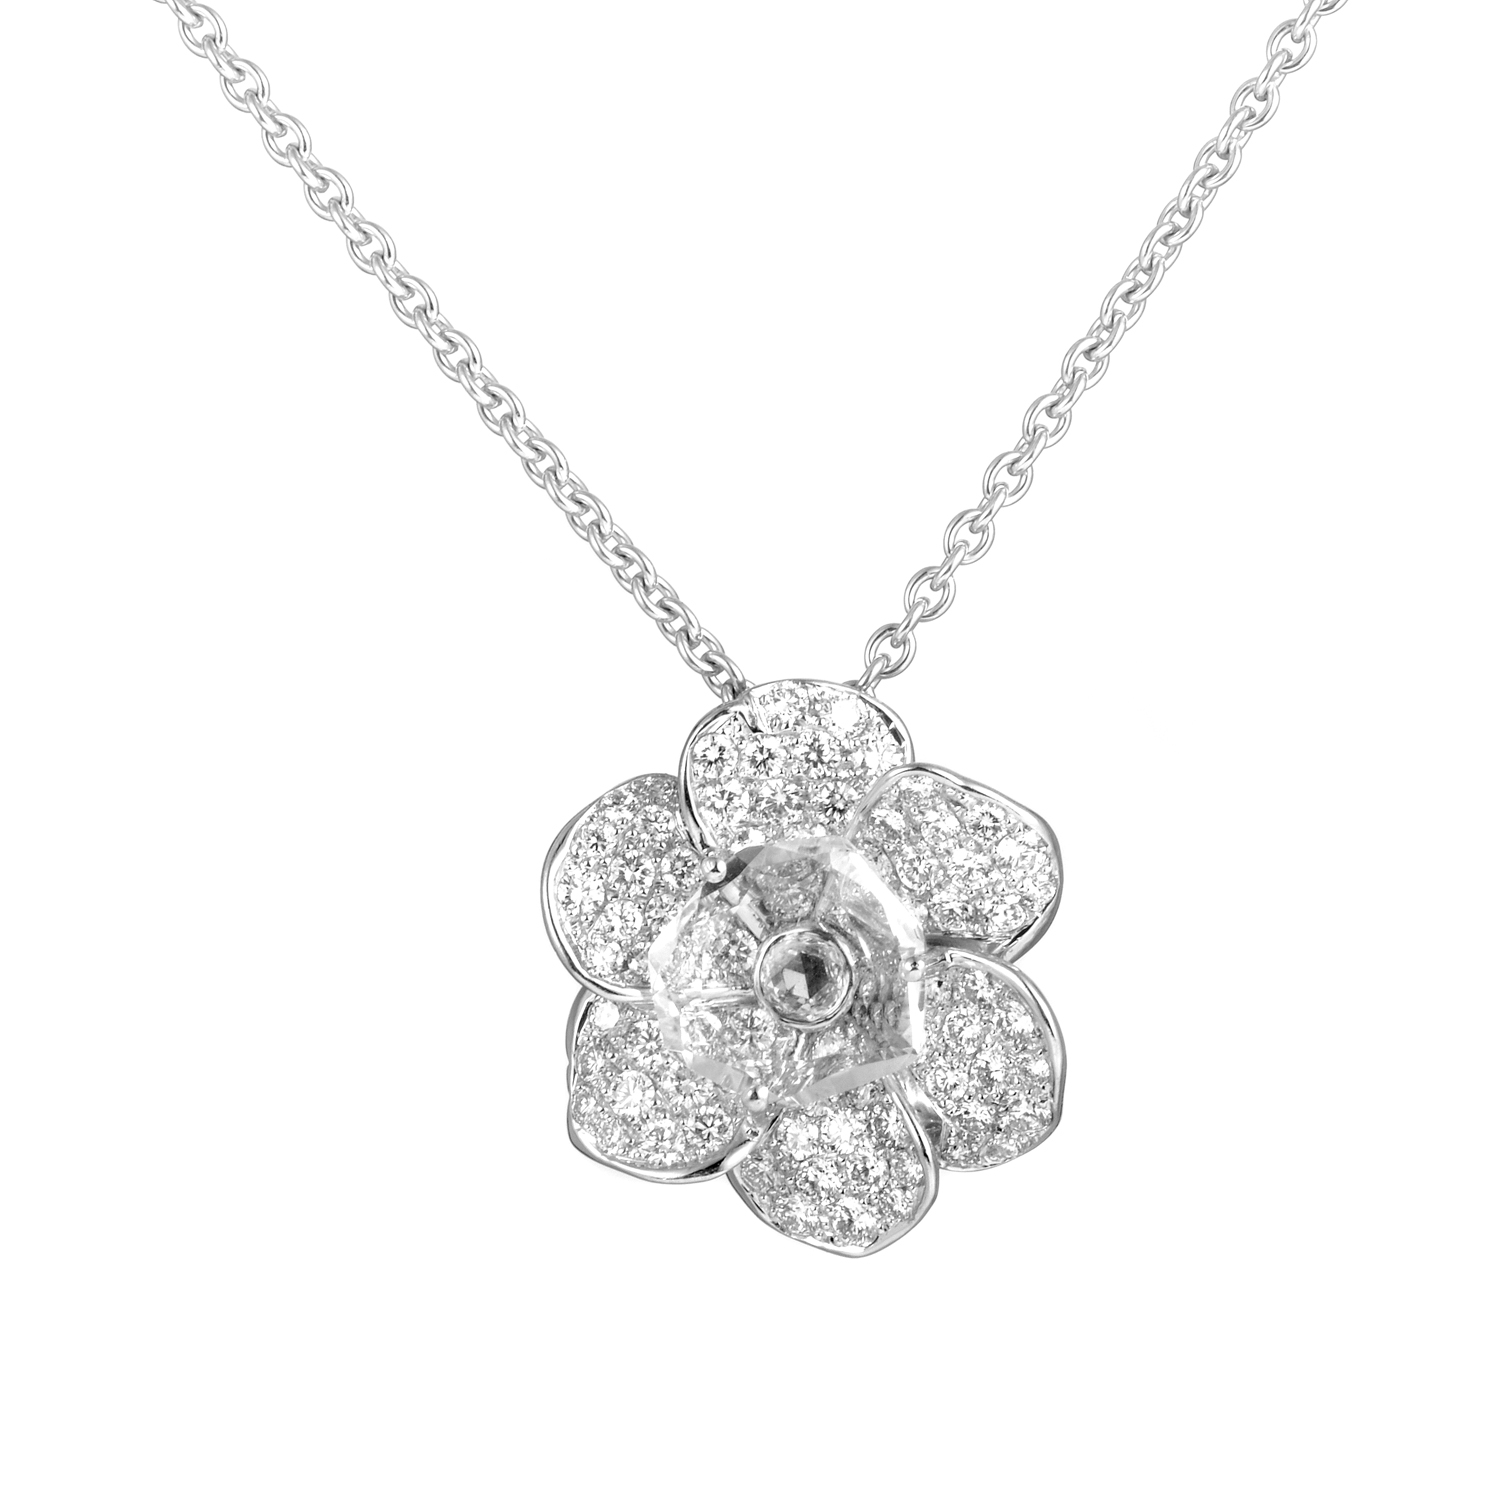 Gardenia 18K White Gold Diamond & Crystal  Pendant Necklace